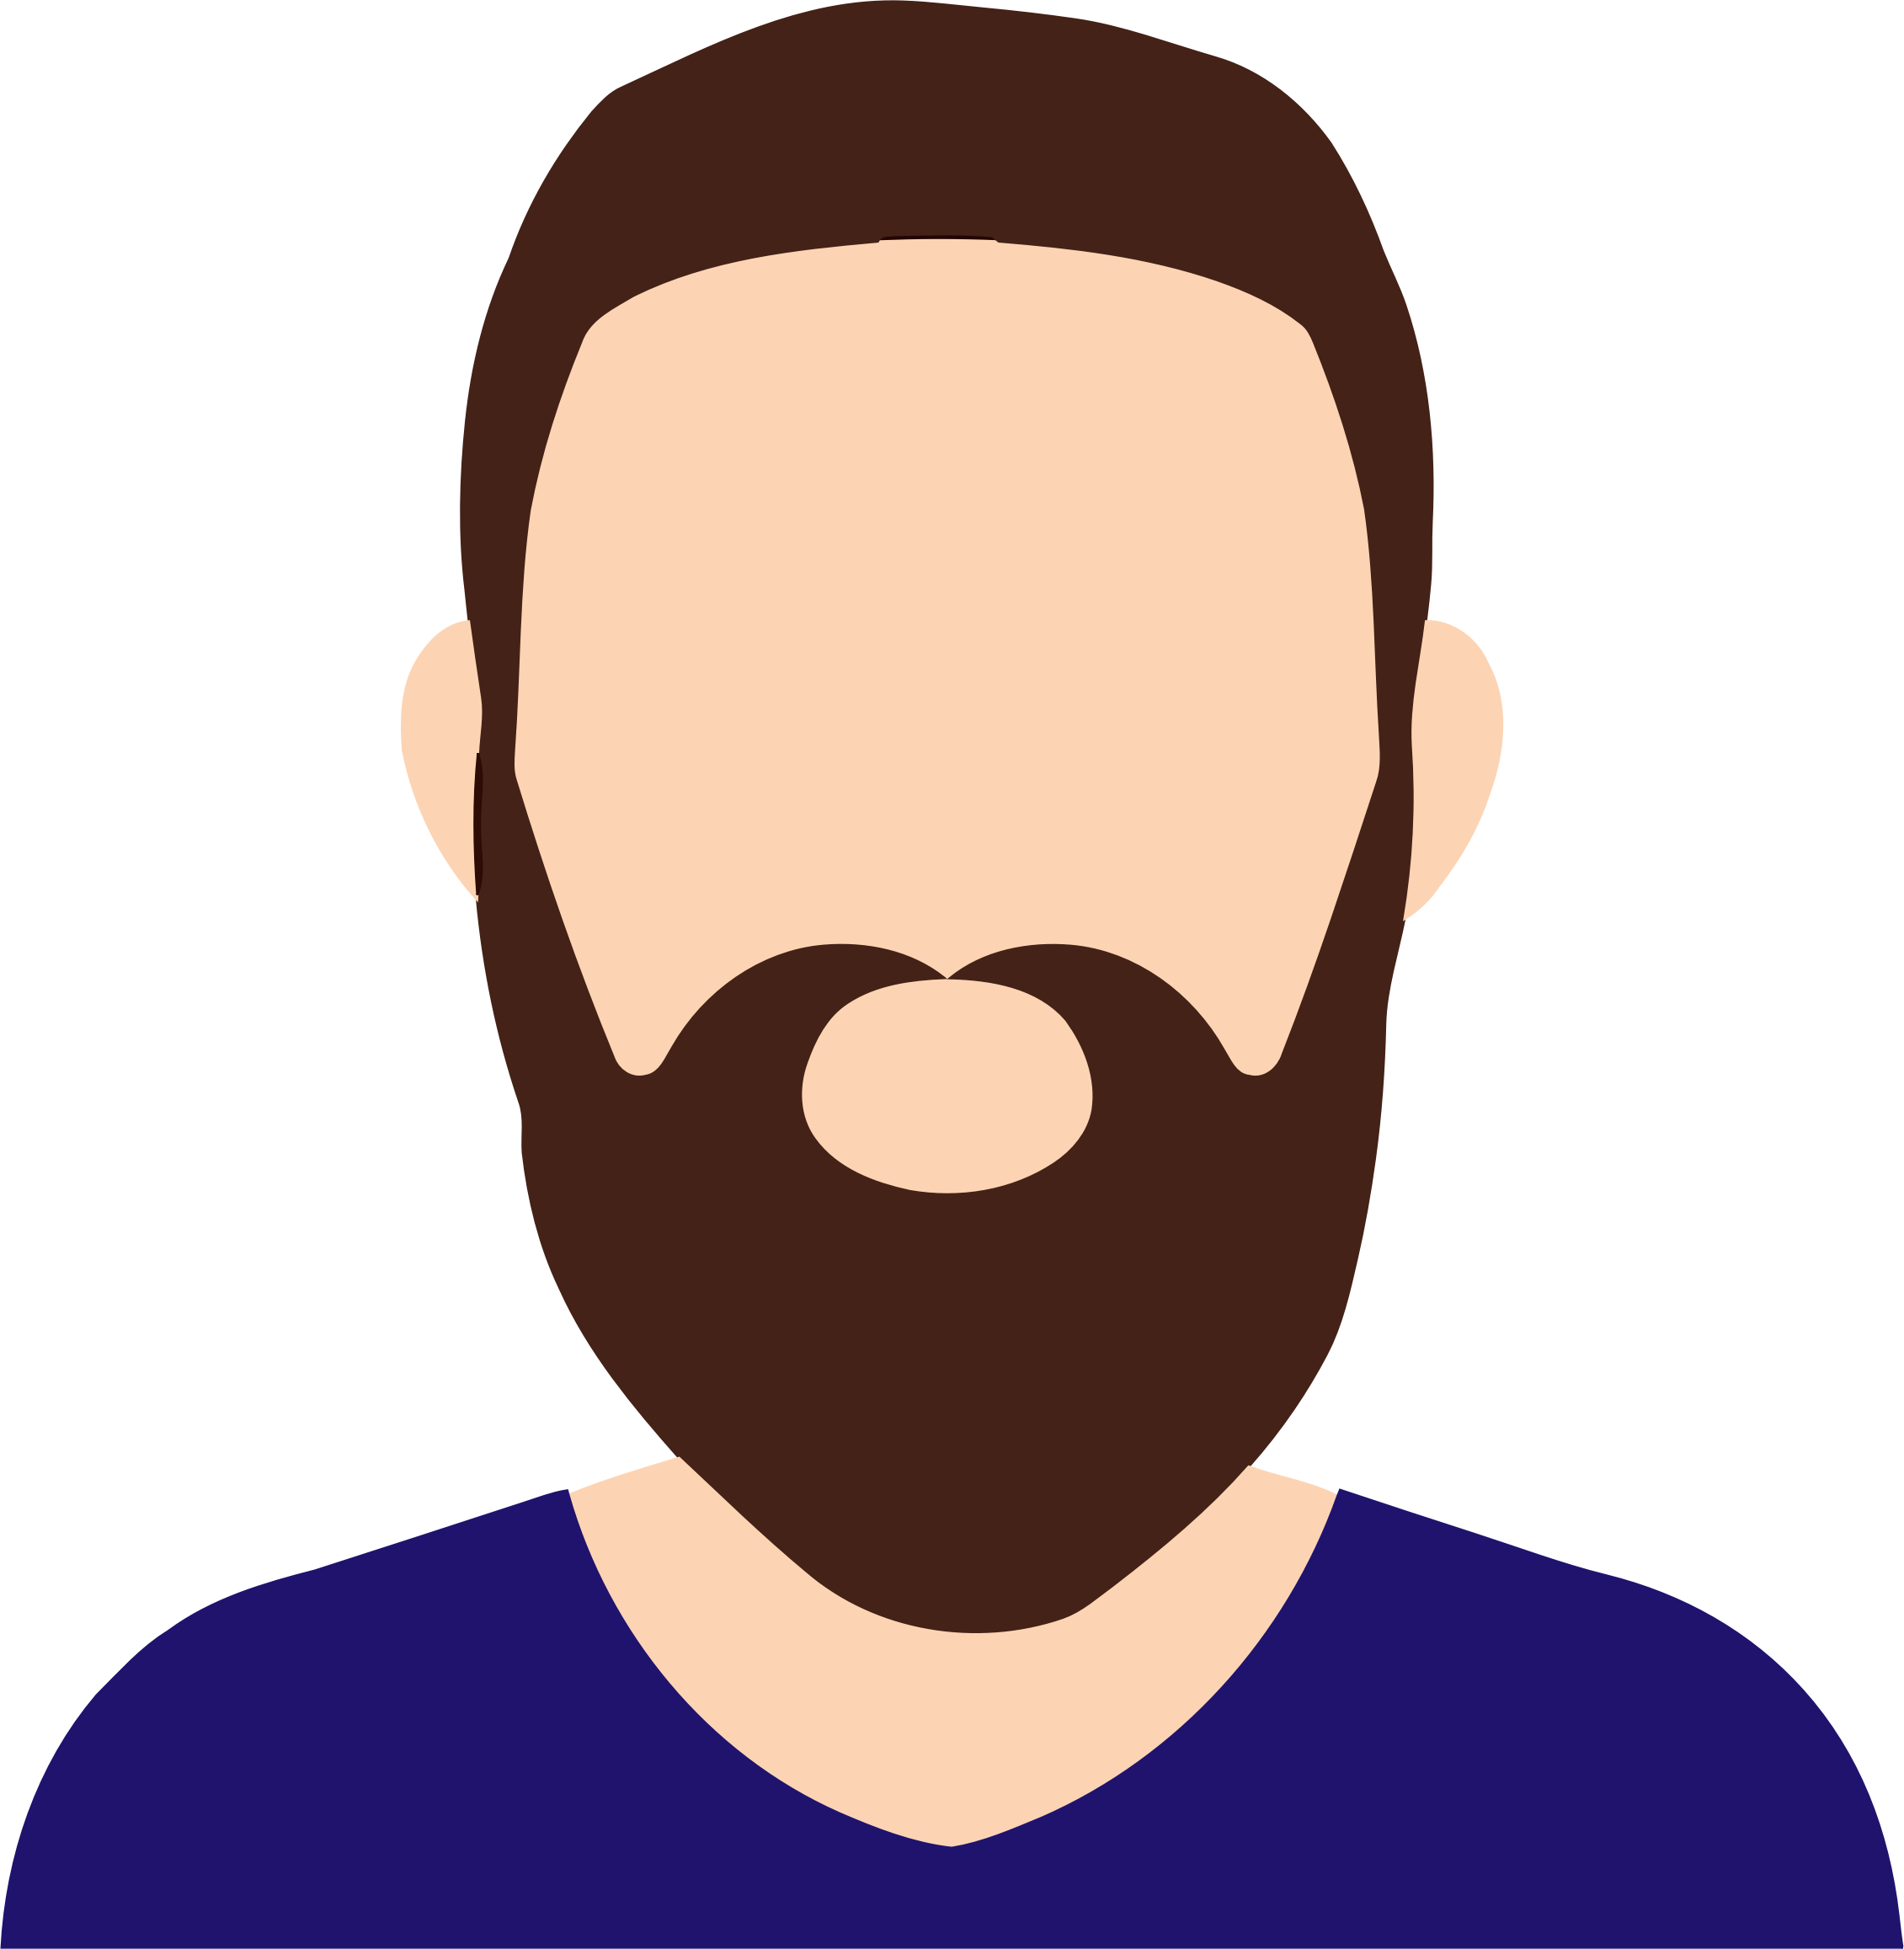 male avatar icon png